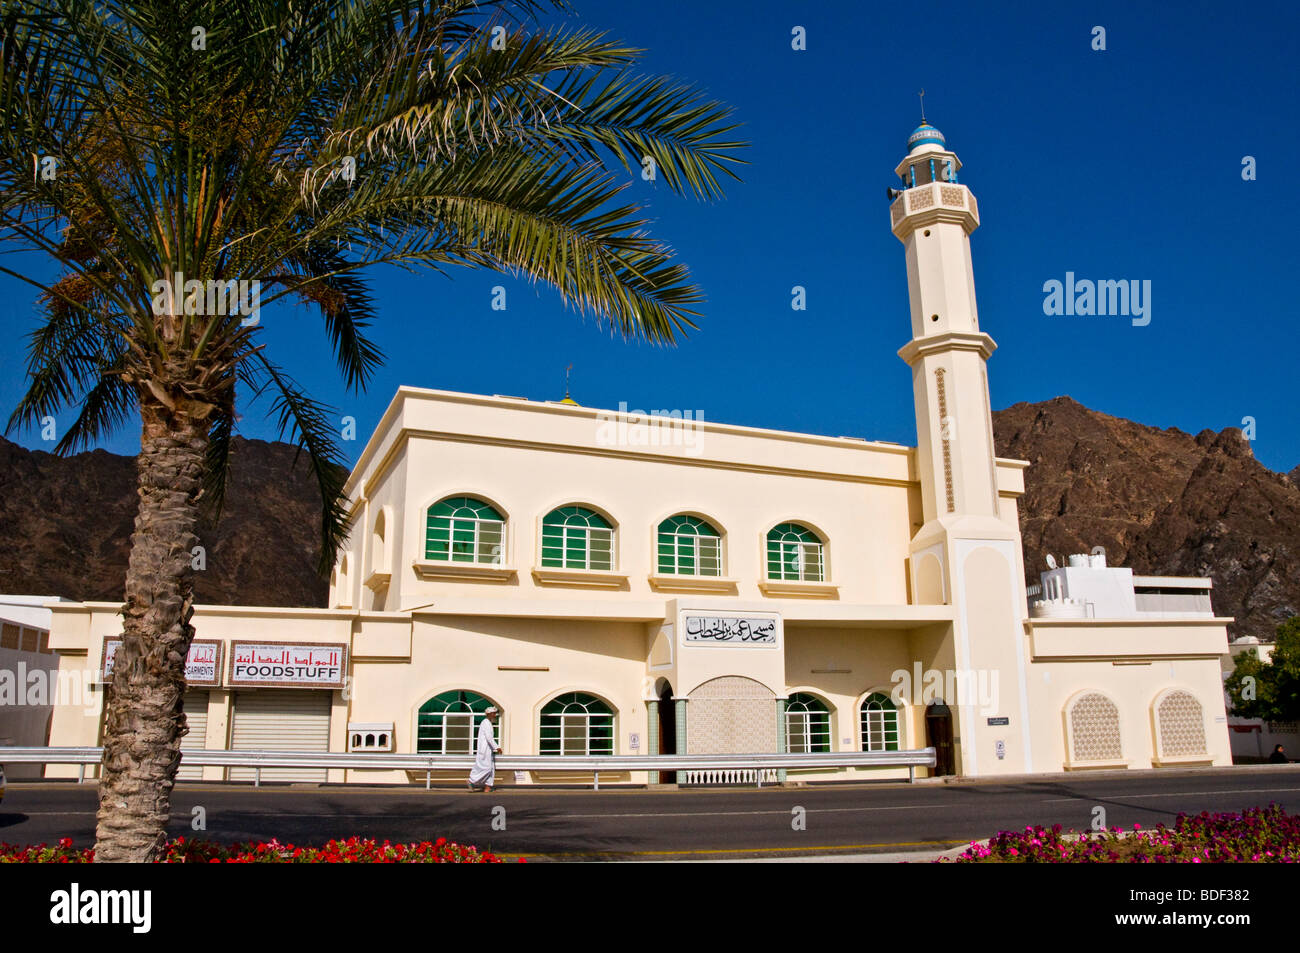 Mosque Muscat Oman - Stock Image